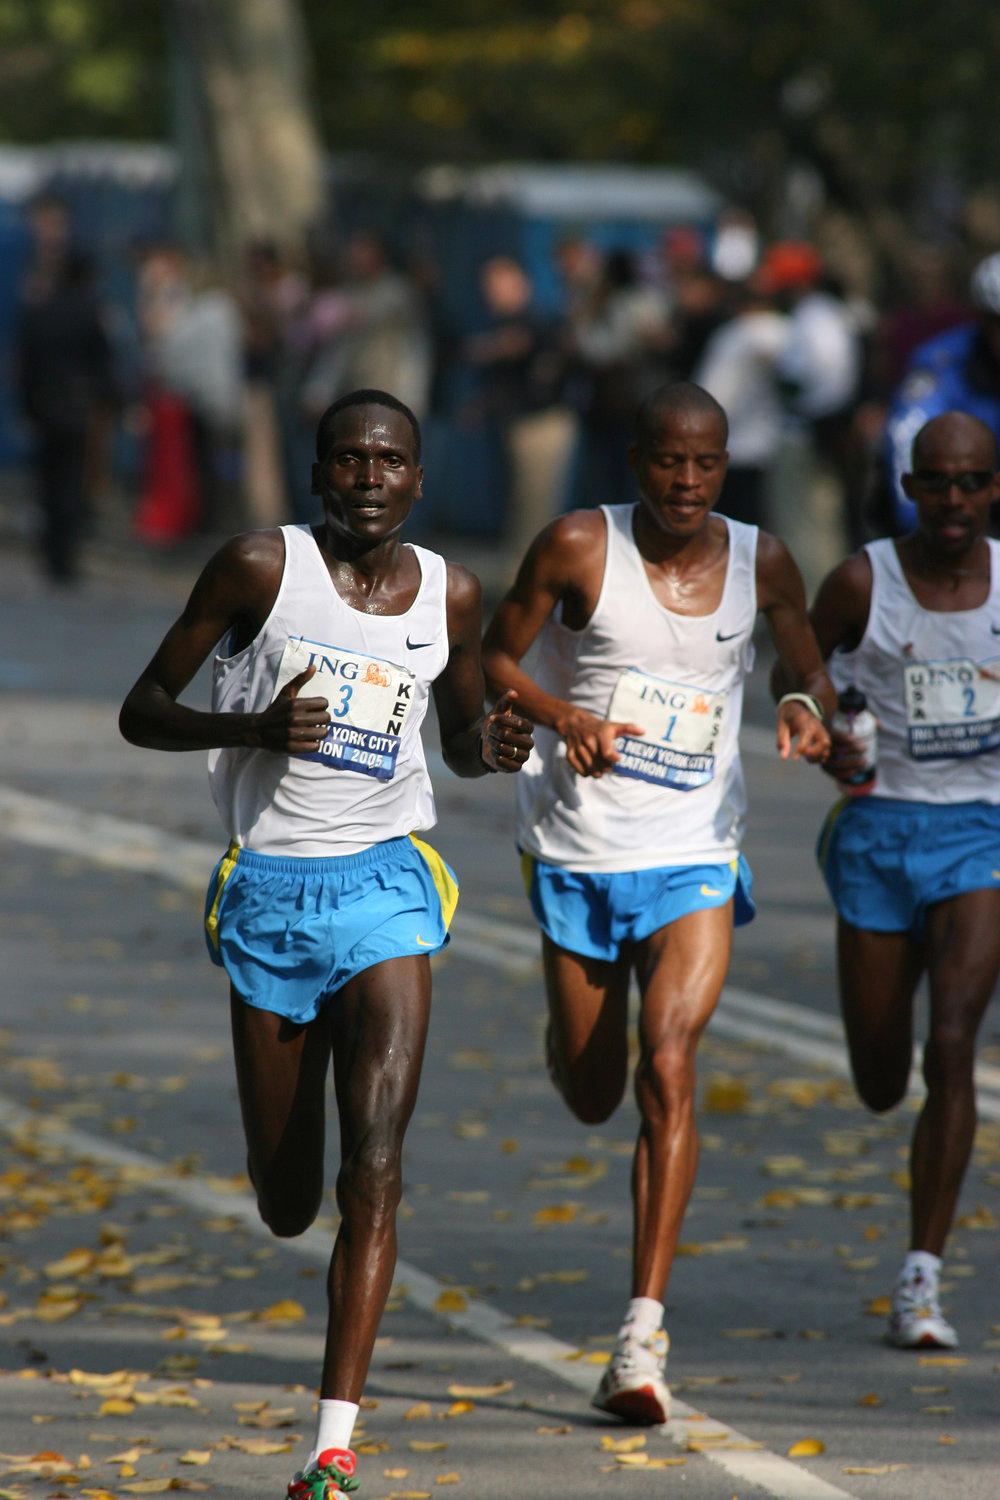 Racing through Central Park, the race's top three bib numbers held the top three places.